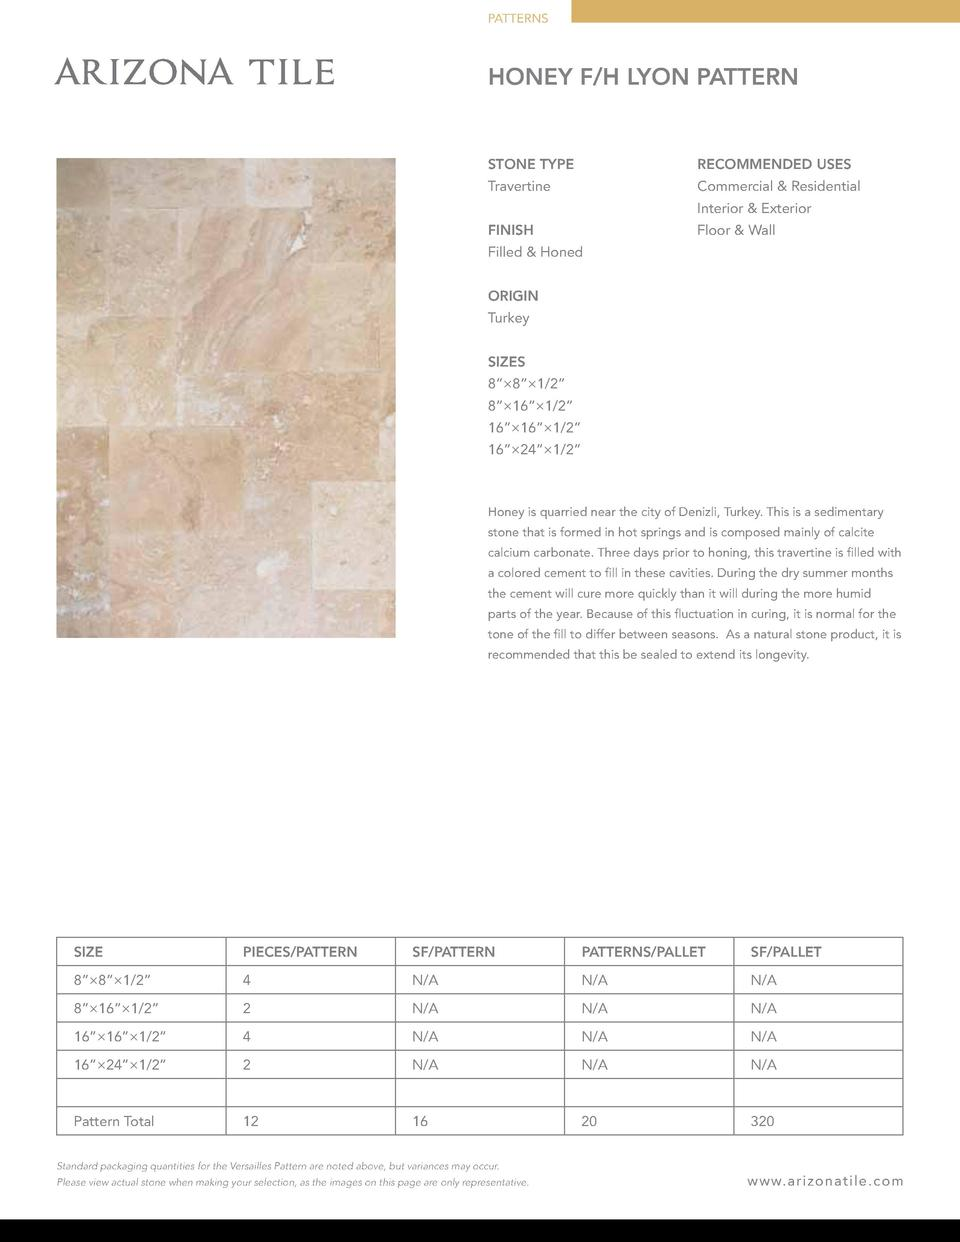 PATTERNS  HONEY F H LYON PATTERN  STONE TYPE  RECOMMENDED USES  Travertine  Commercial   Residential Interior   Exterior  ...